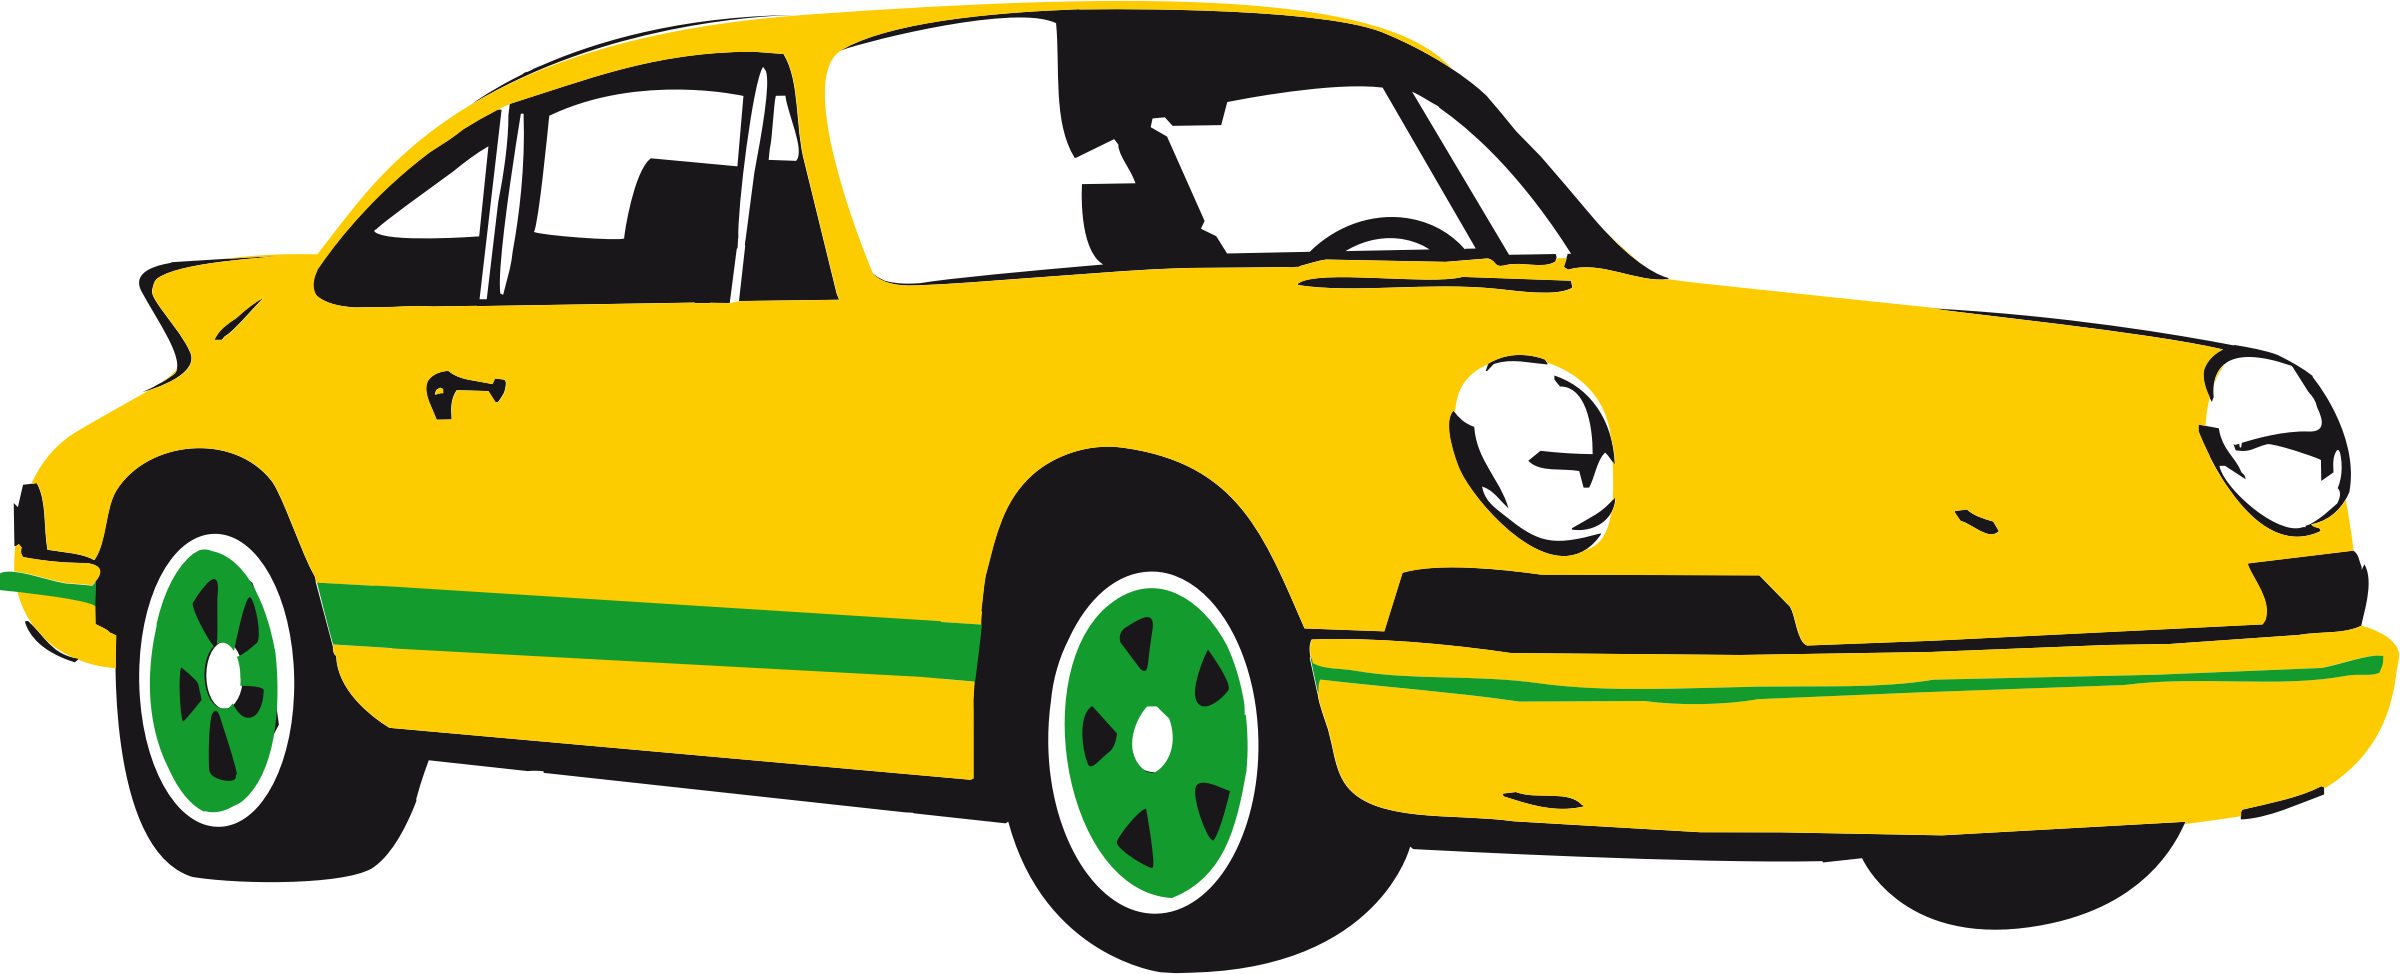 Sport car yellow by luchapress